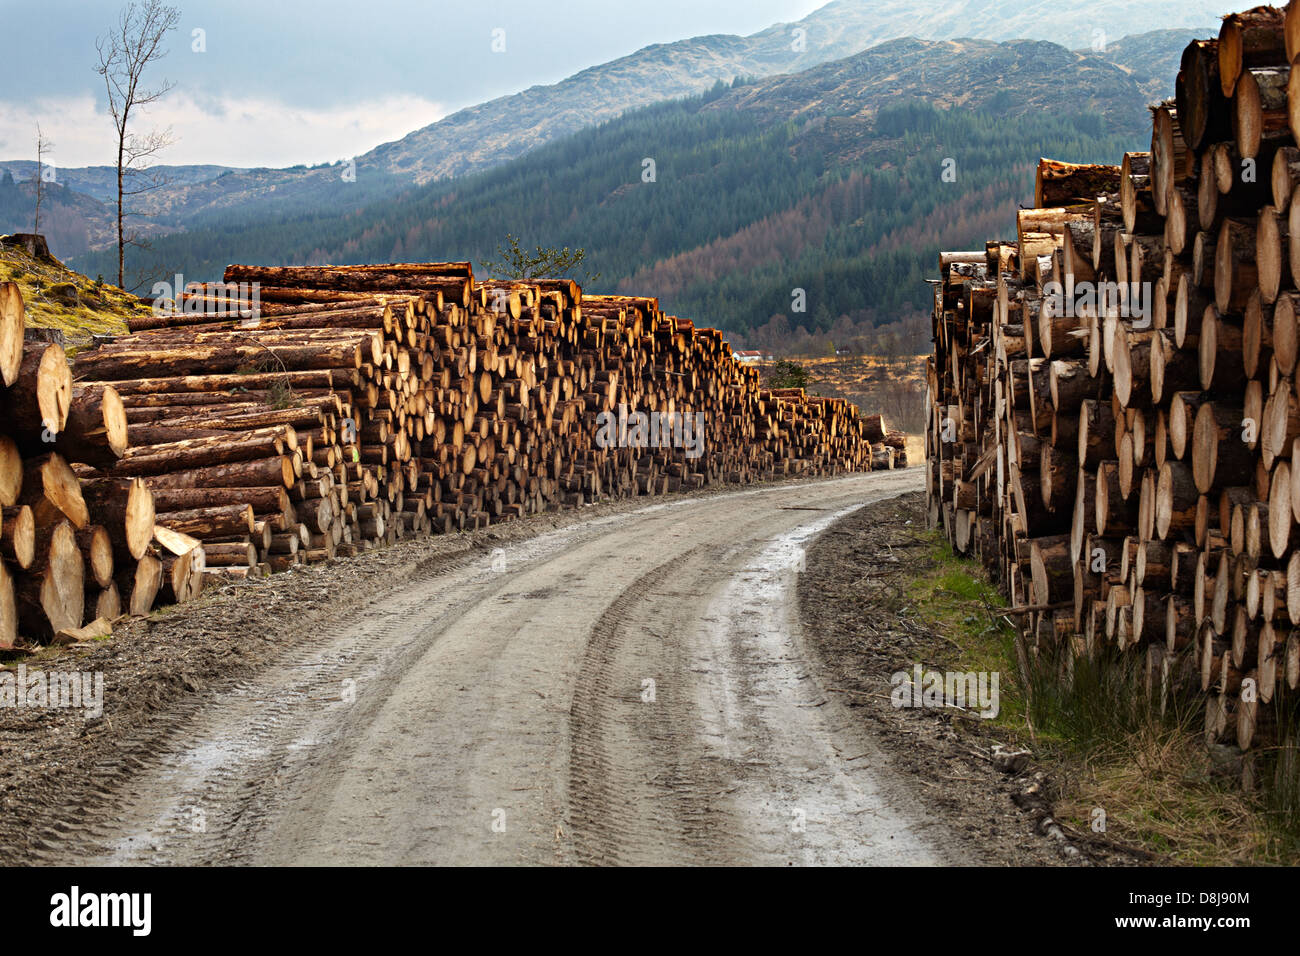 Forestry at Polloch and Loch Shiel - Stock Image